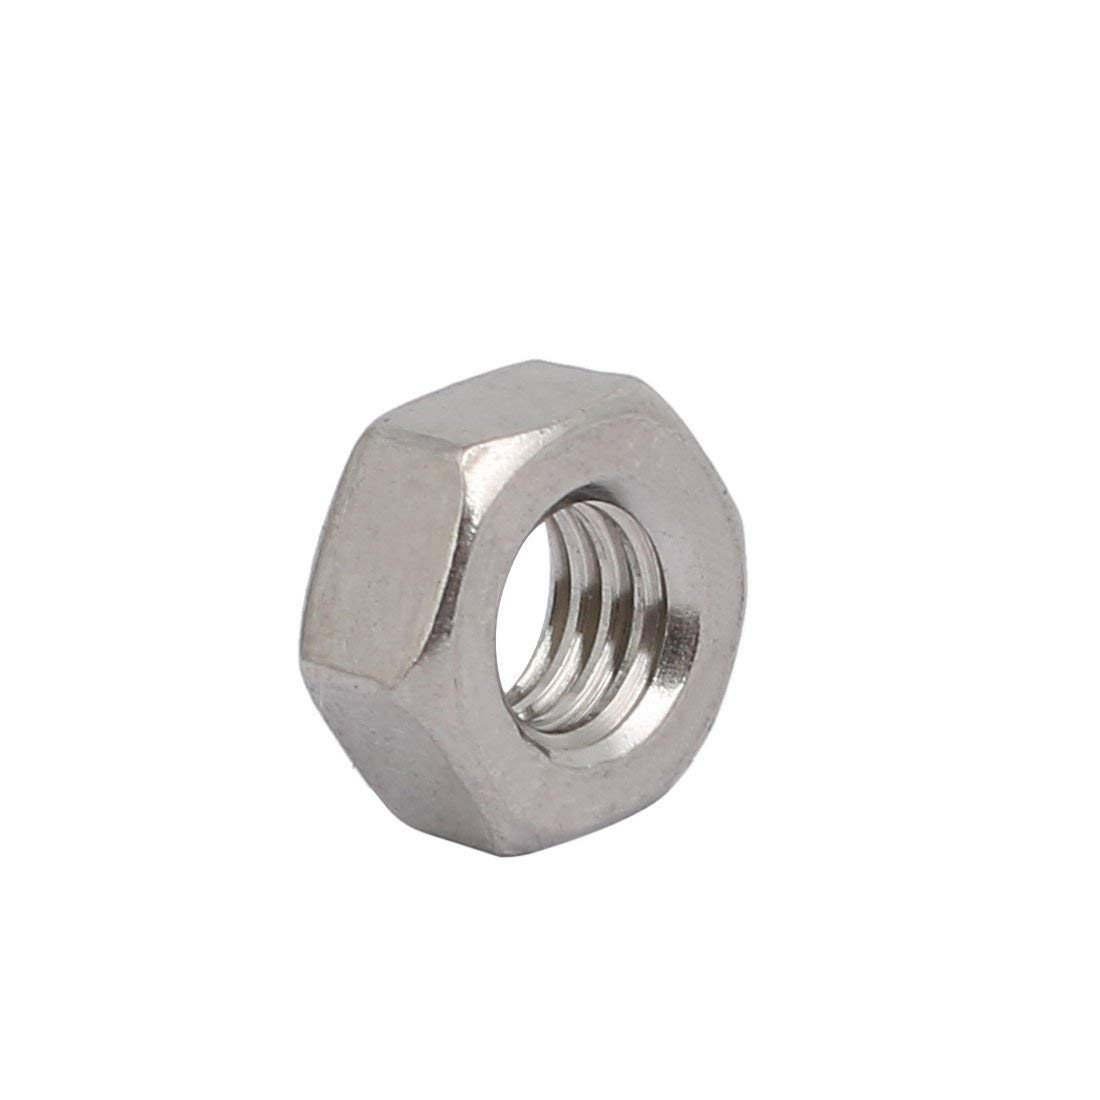 4pcs M6 x 1mm Step Metric Thread 304 Stainless Steel Hexagon Nuts on The Left